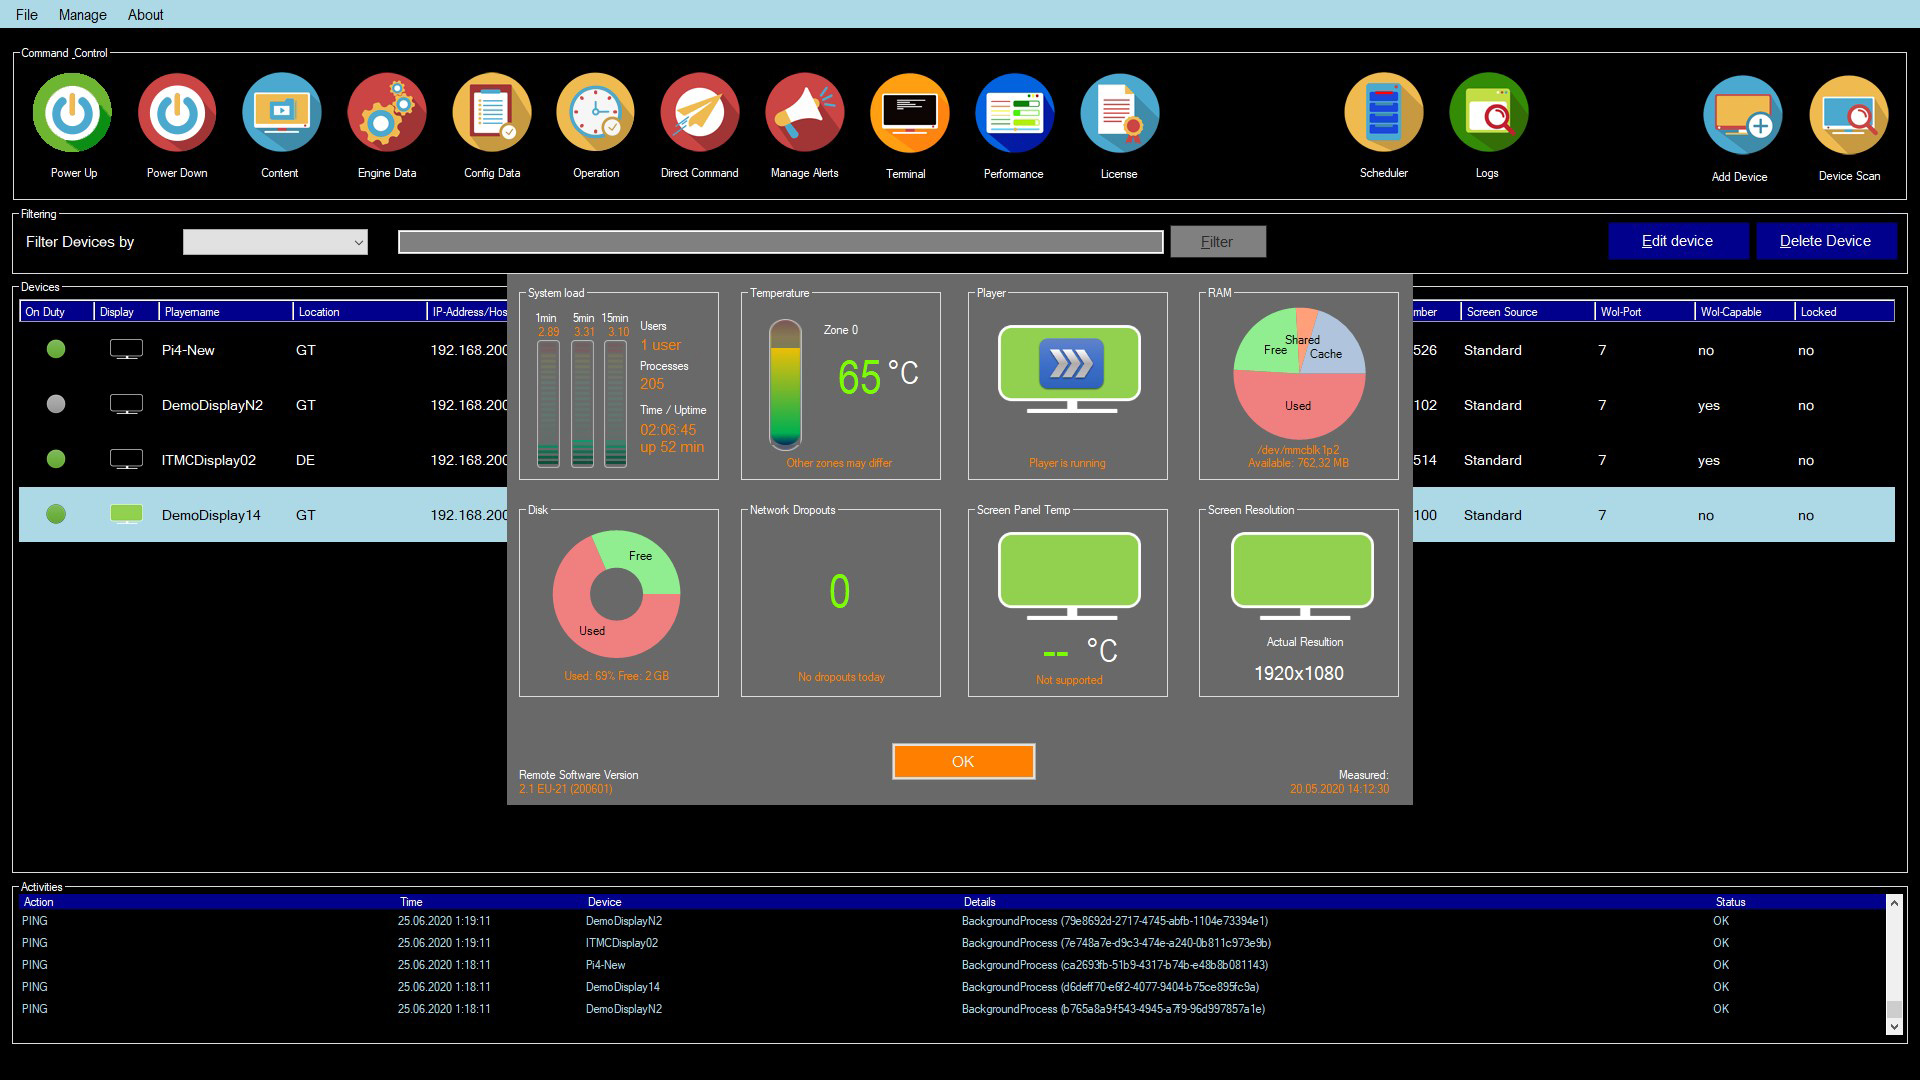 WPITCOM Display Manager 2 Performance Overview